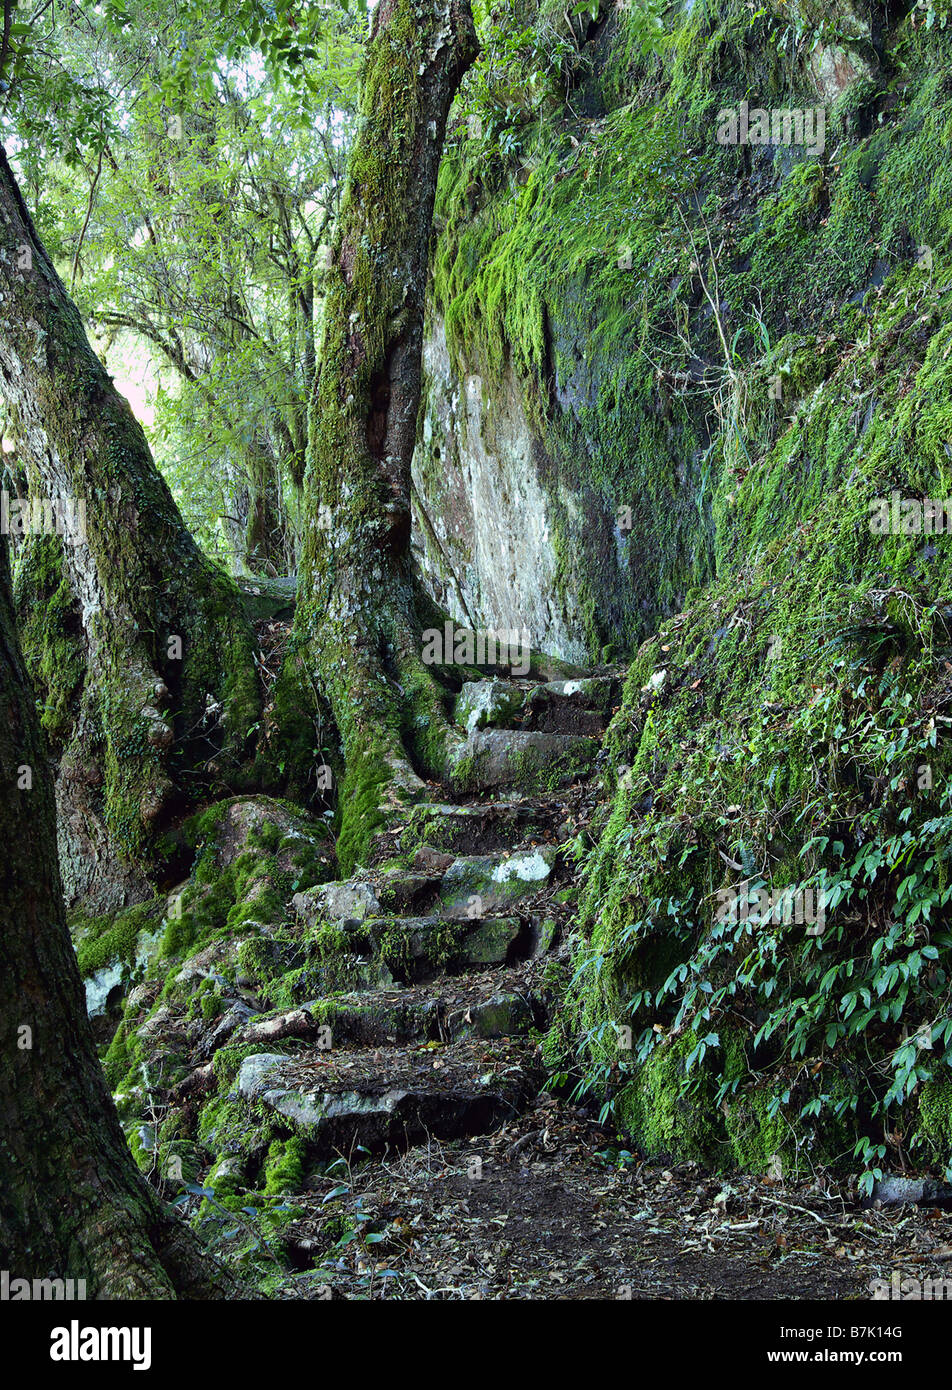 steps and a path through the oxley world heritage rainforest - Stock Image